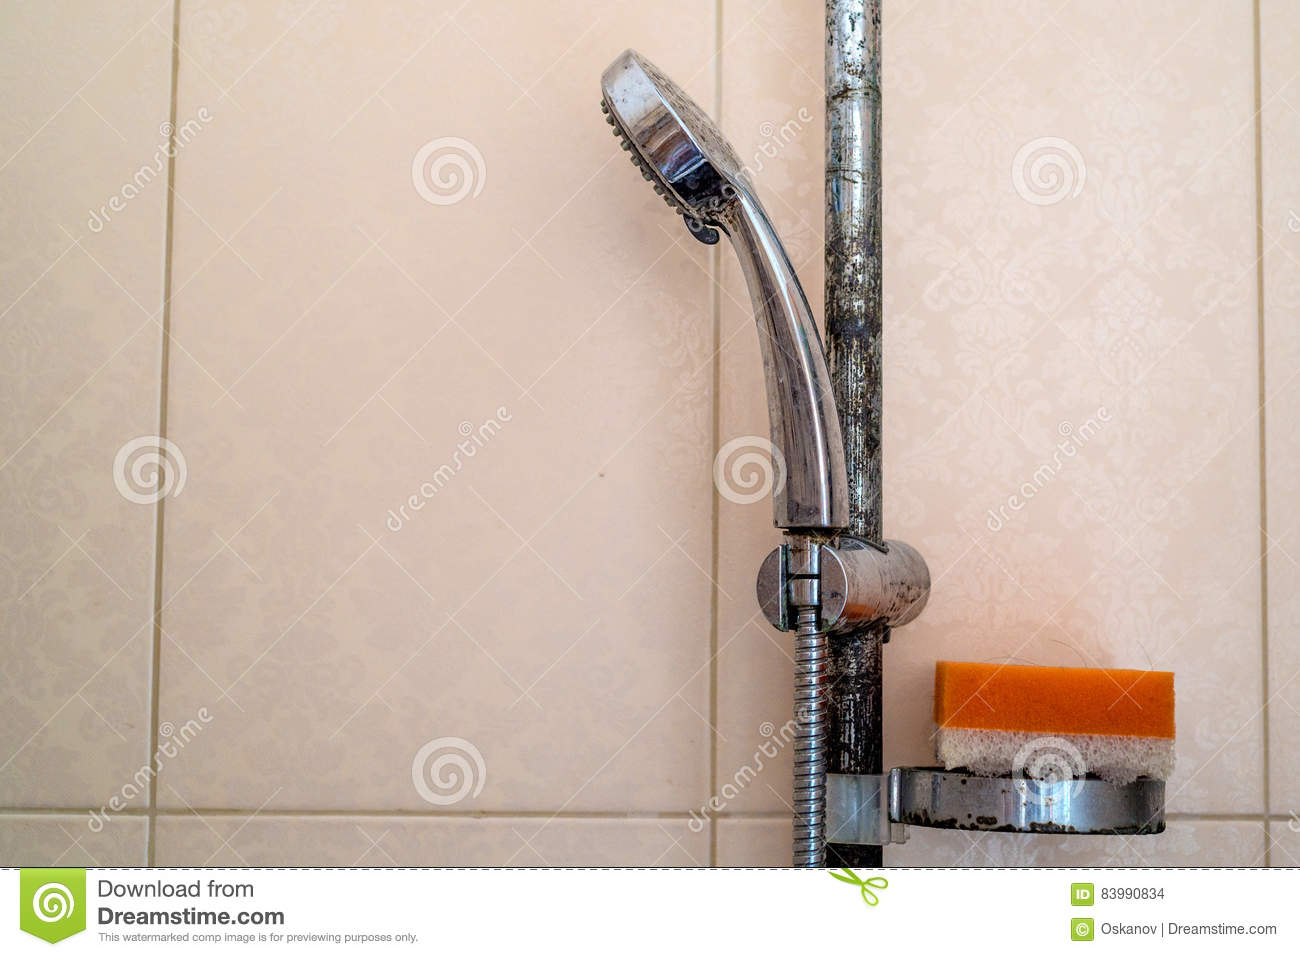 Hard Water Deposit And Rust On Shower Tap Stock Photo - Image of ...